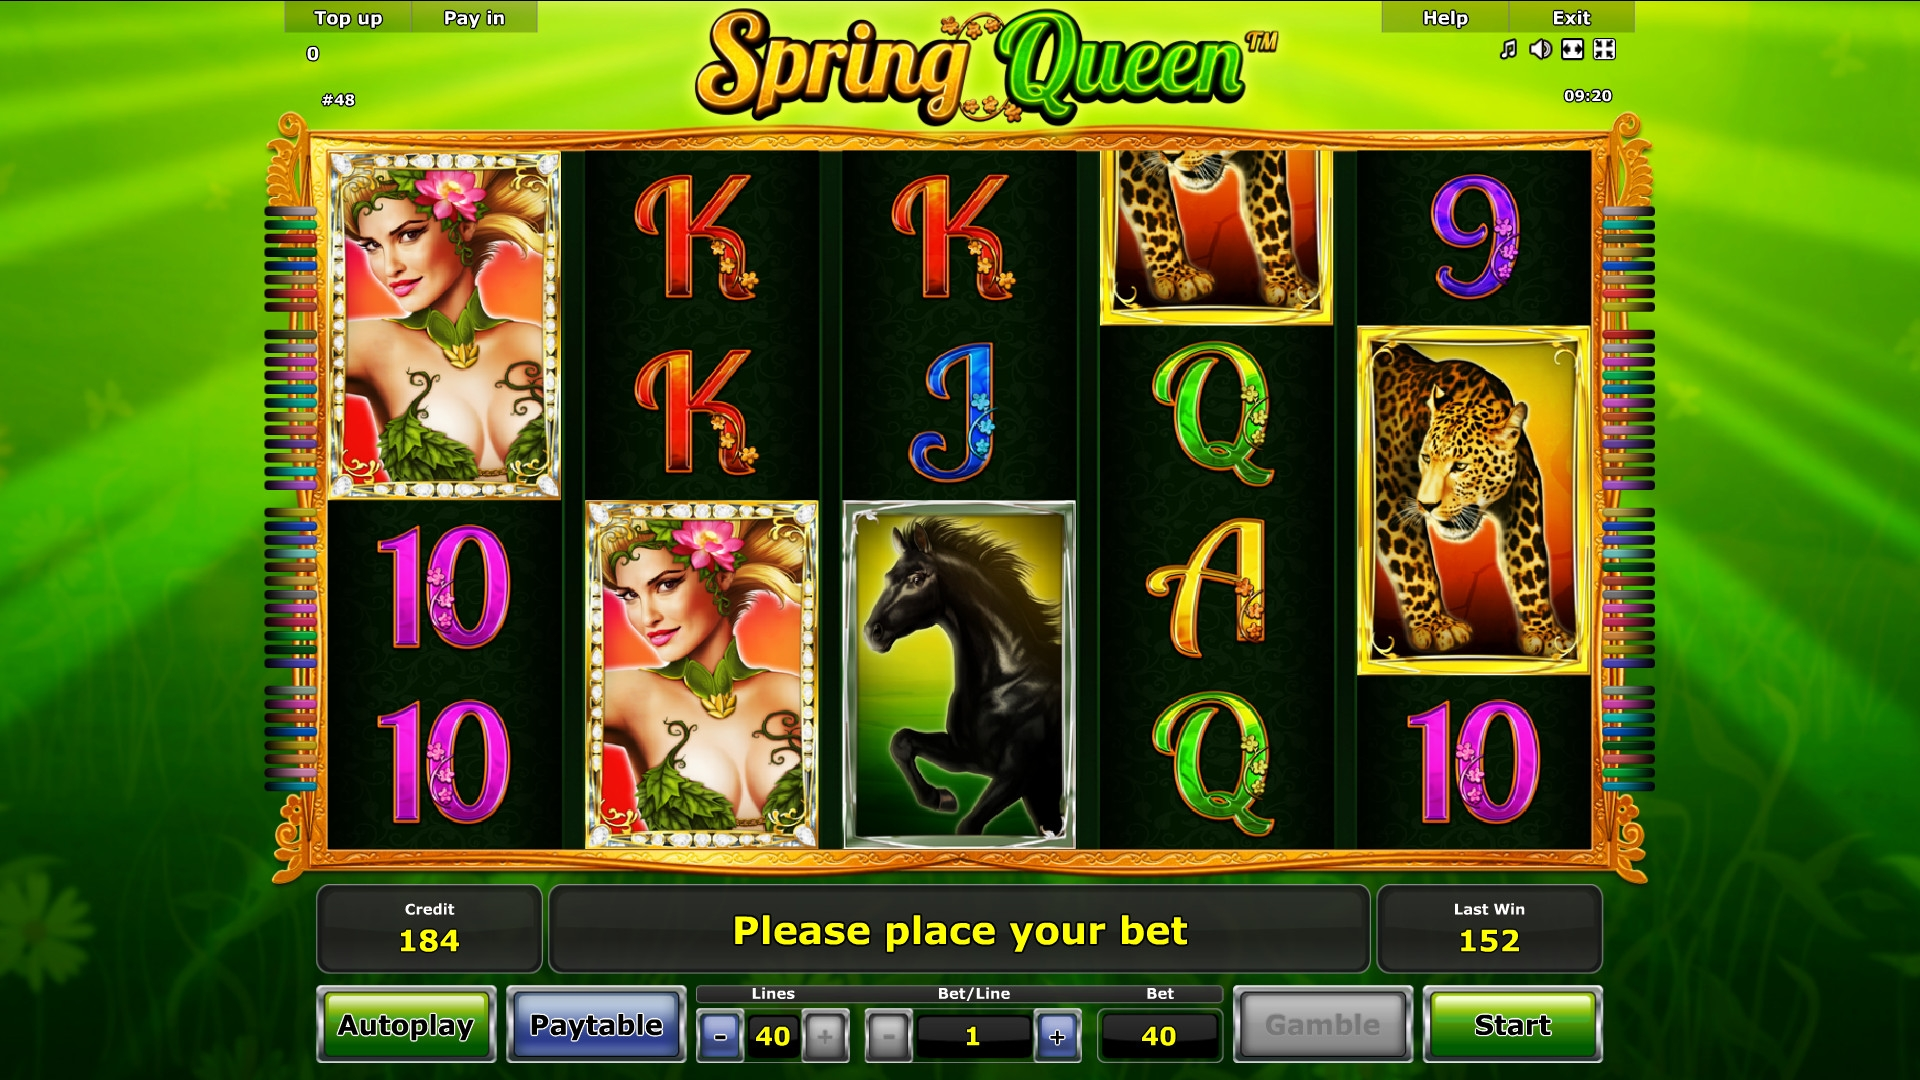 Spring Queen (Spring Queen) from category Slots